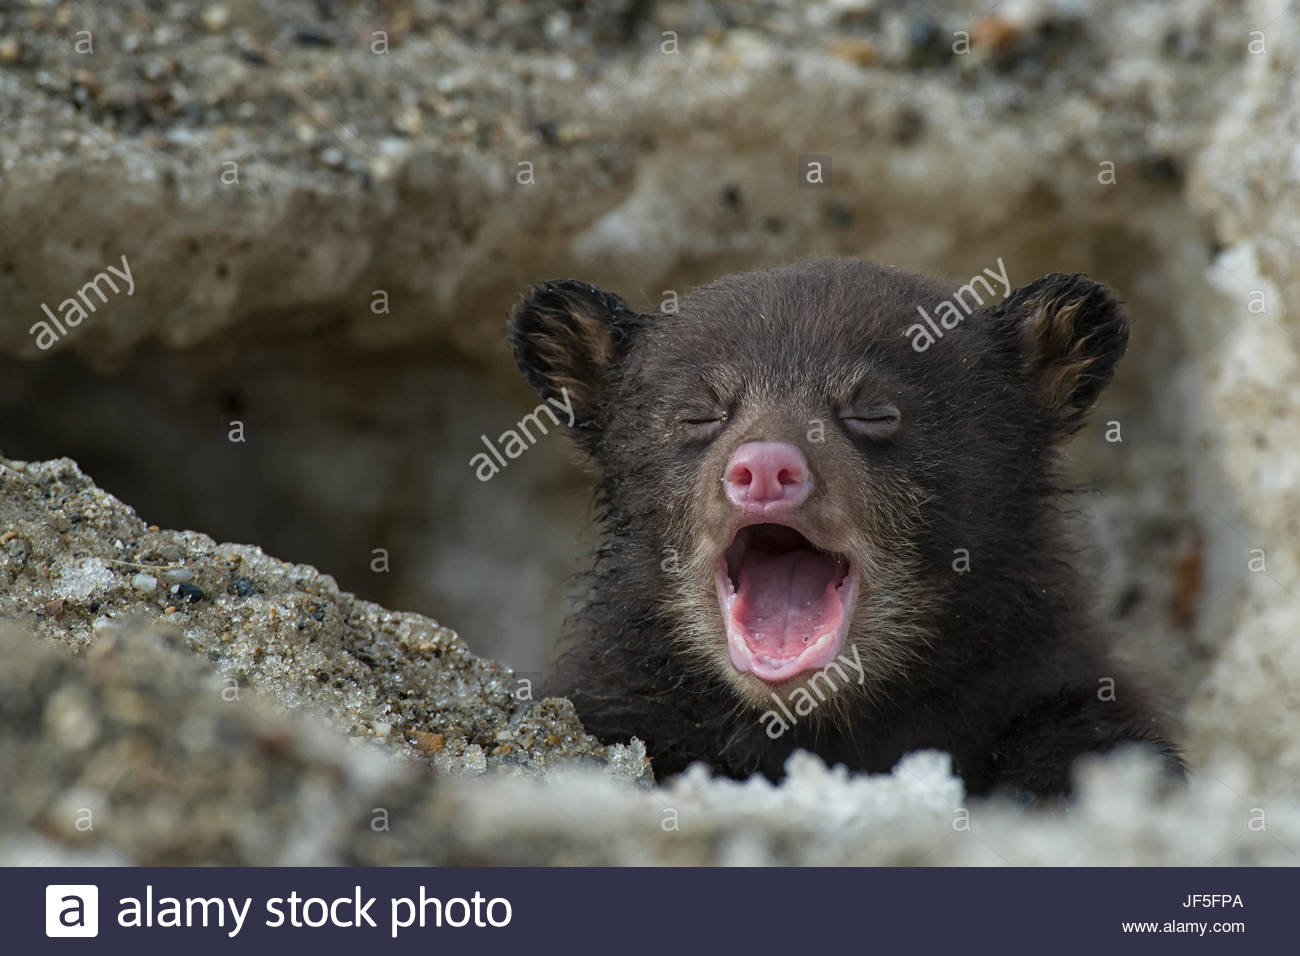 A weeks-old black bear cub crying as it comes out of its den for the first time. - Stock Image